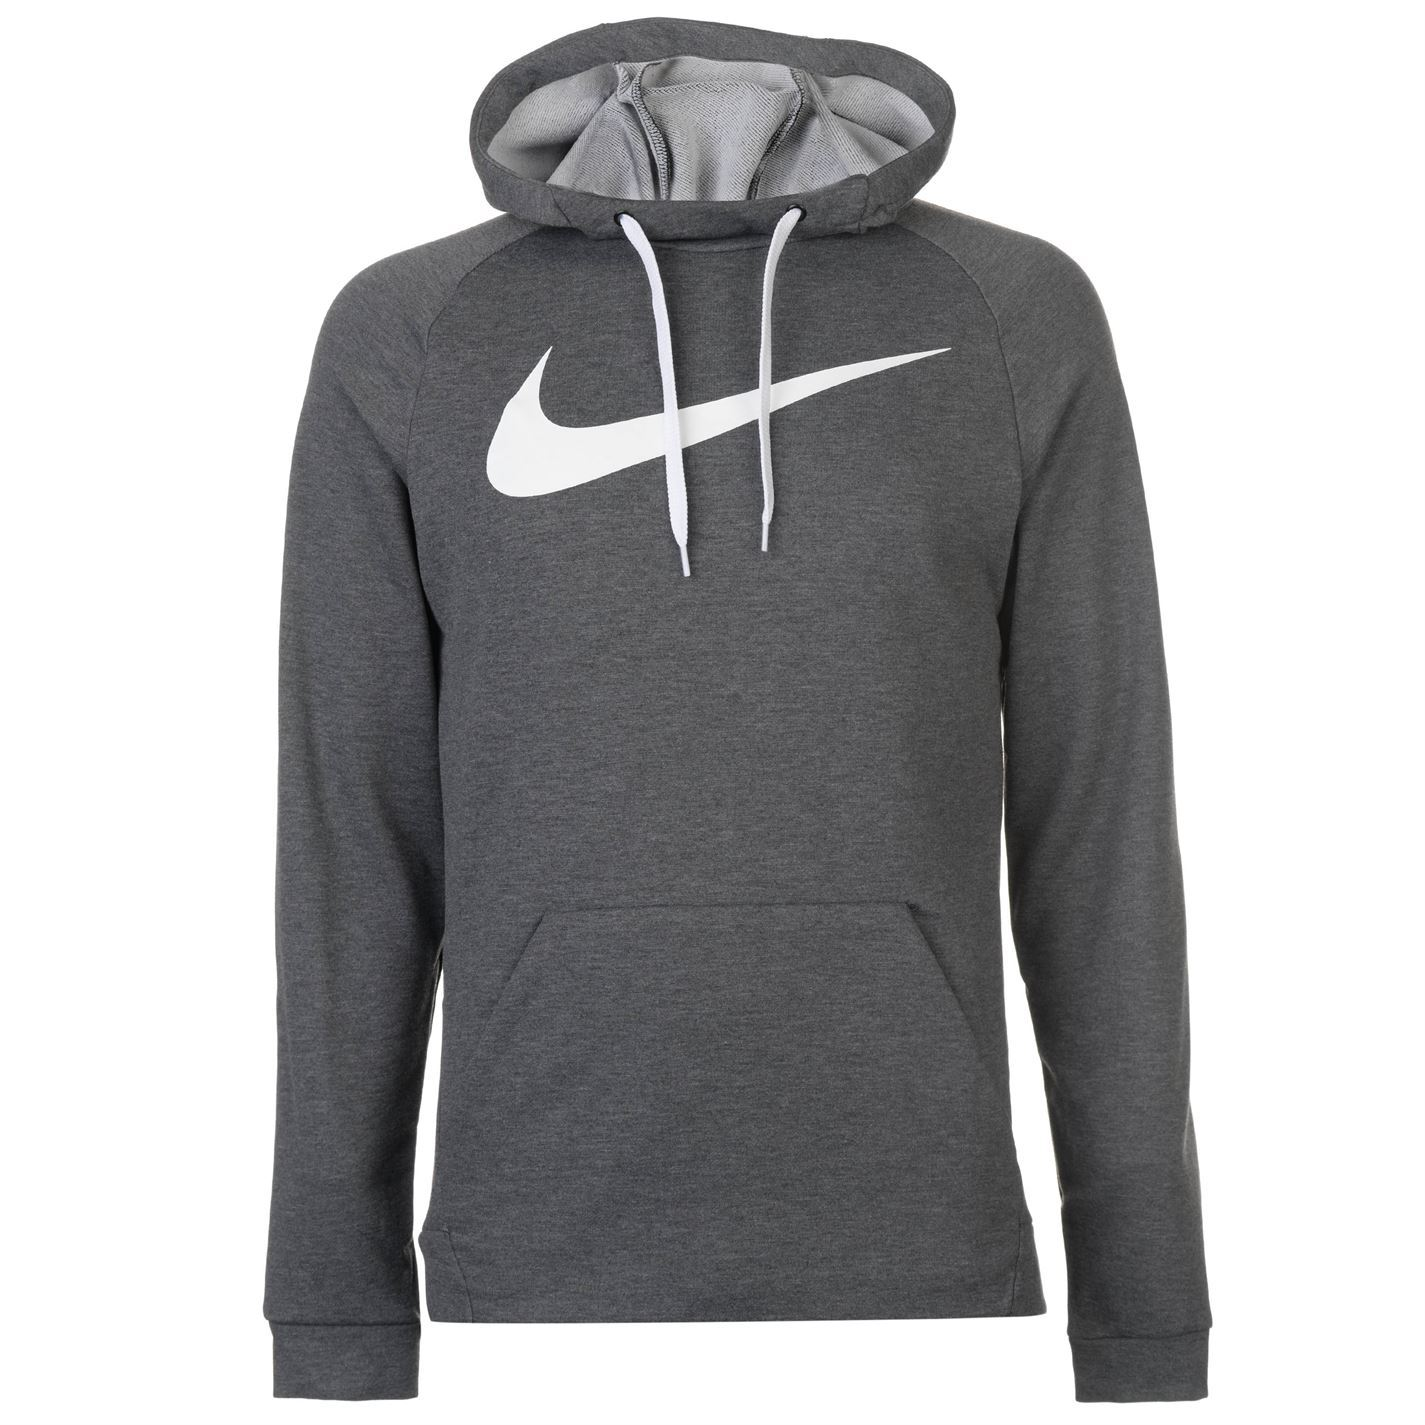 Nike-Dri-Fit-Swoosh-Pullover-Hoody-Mens-OTH-Hoodie-Sweatshirt-Sweater-Hooded-Top thumbnail 10